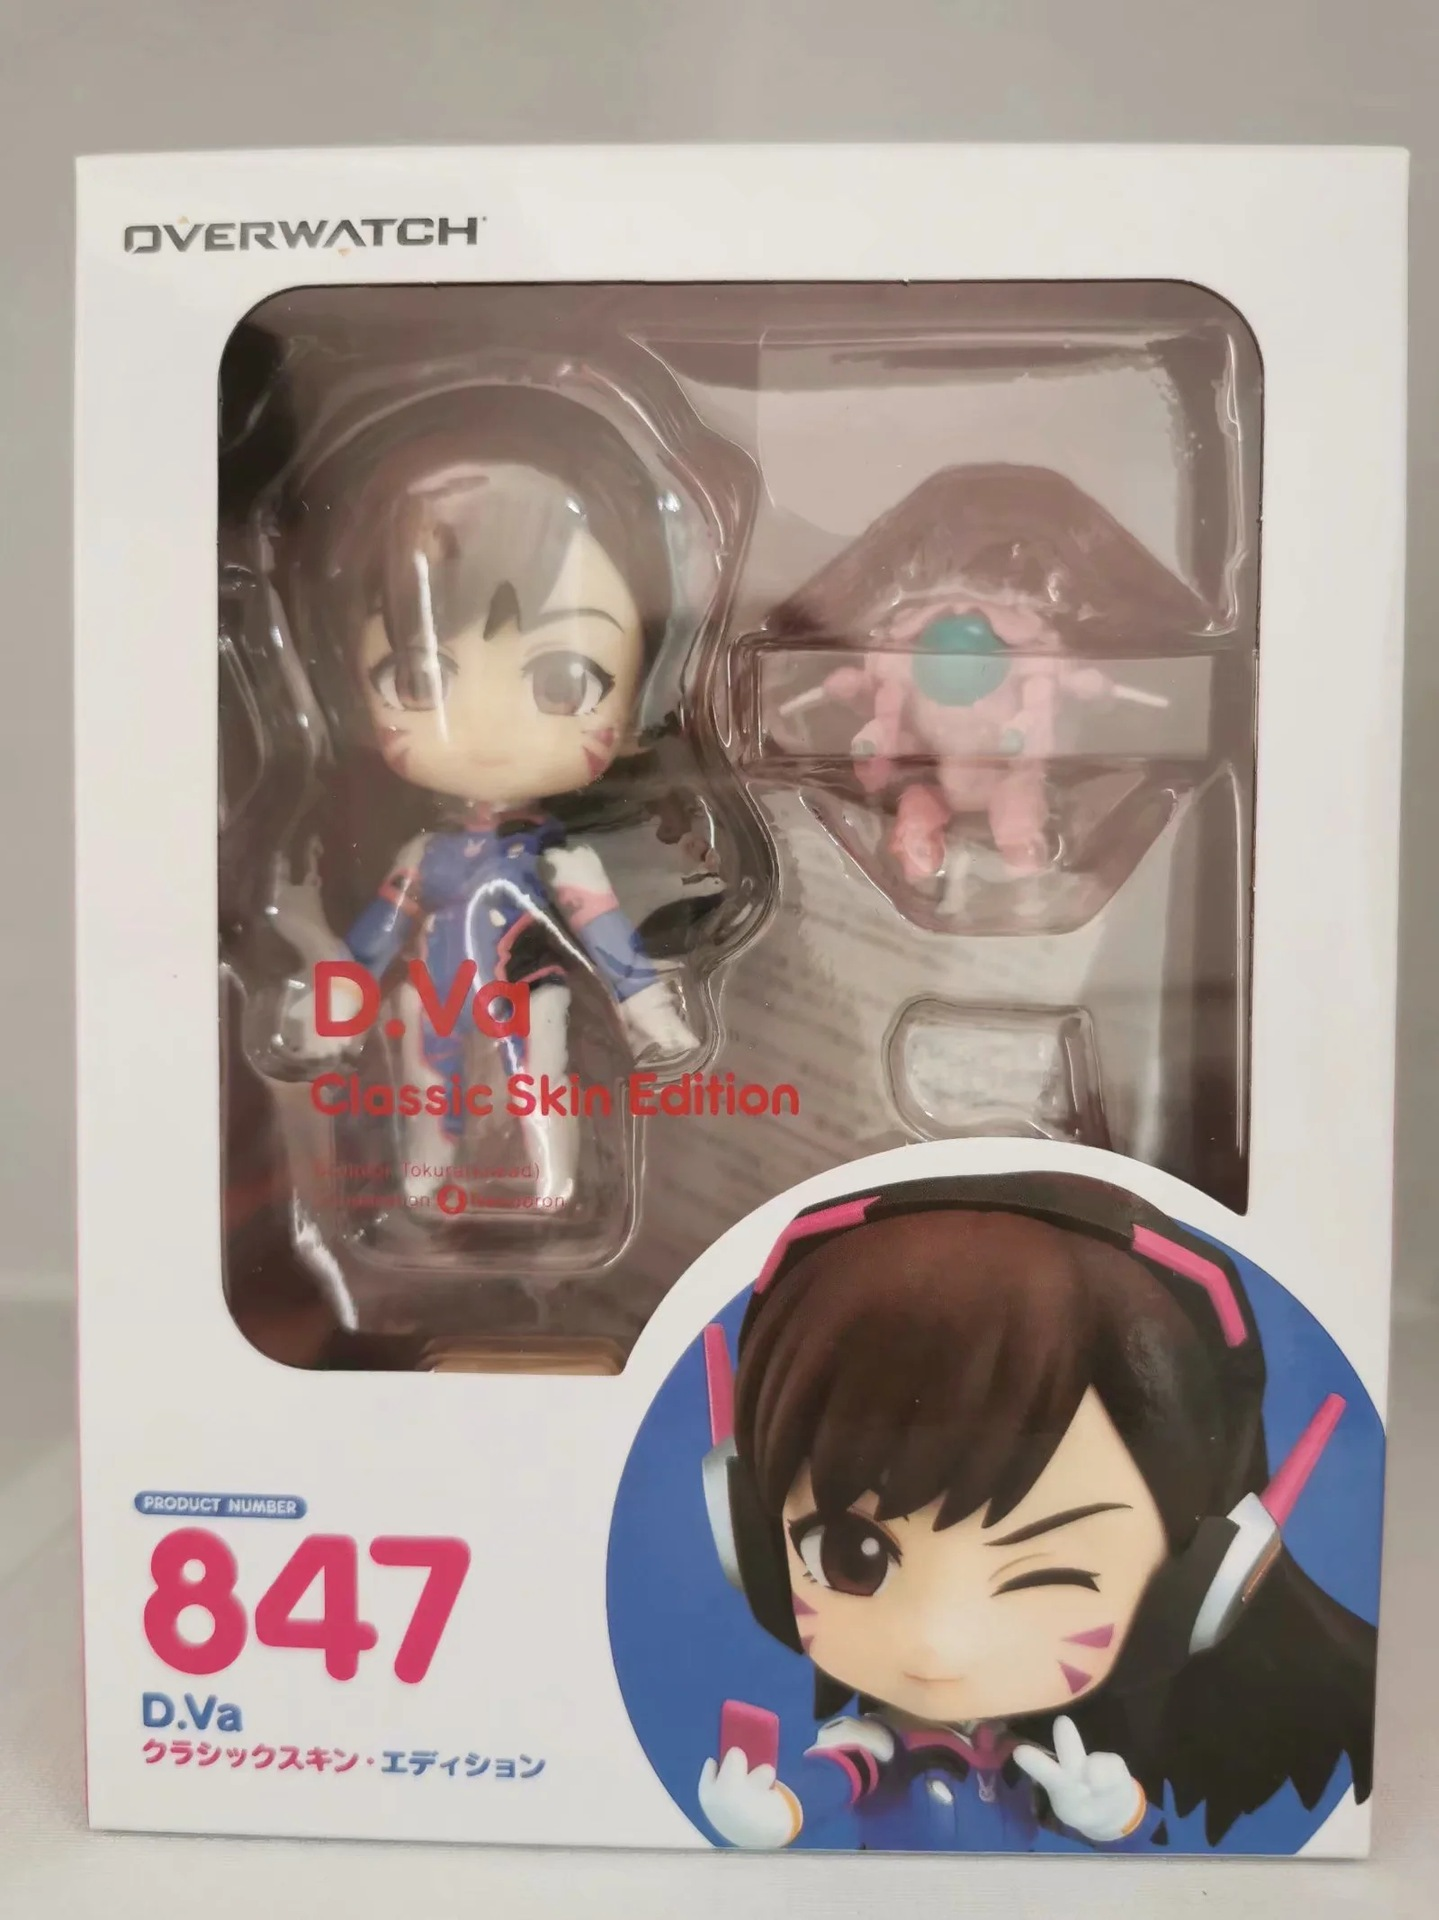 Overwatches D.Va 847 # Figures Song Hana Classic Skin Edition Changeable Face Doll Action Figures Collectable Model Toy Gifts 5